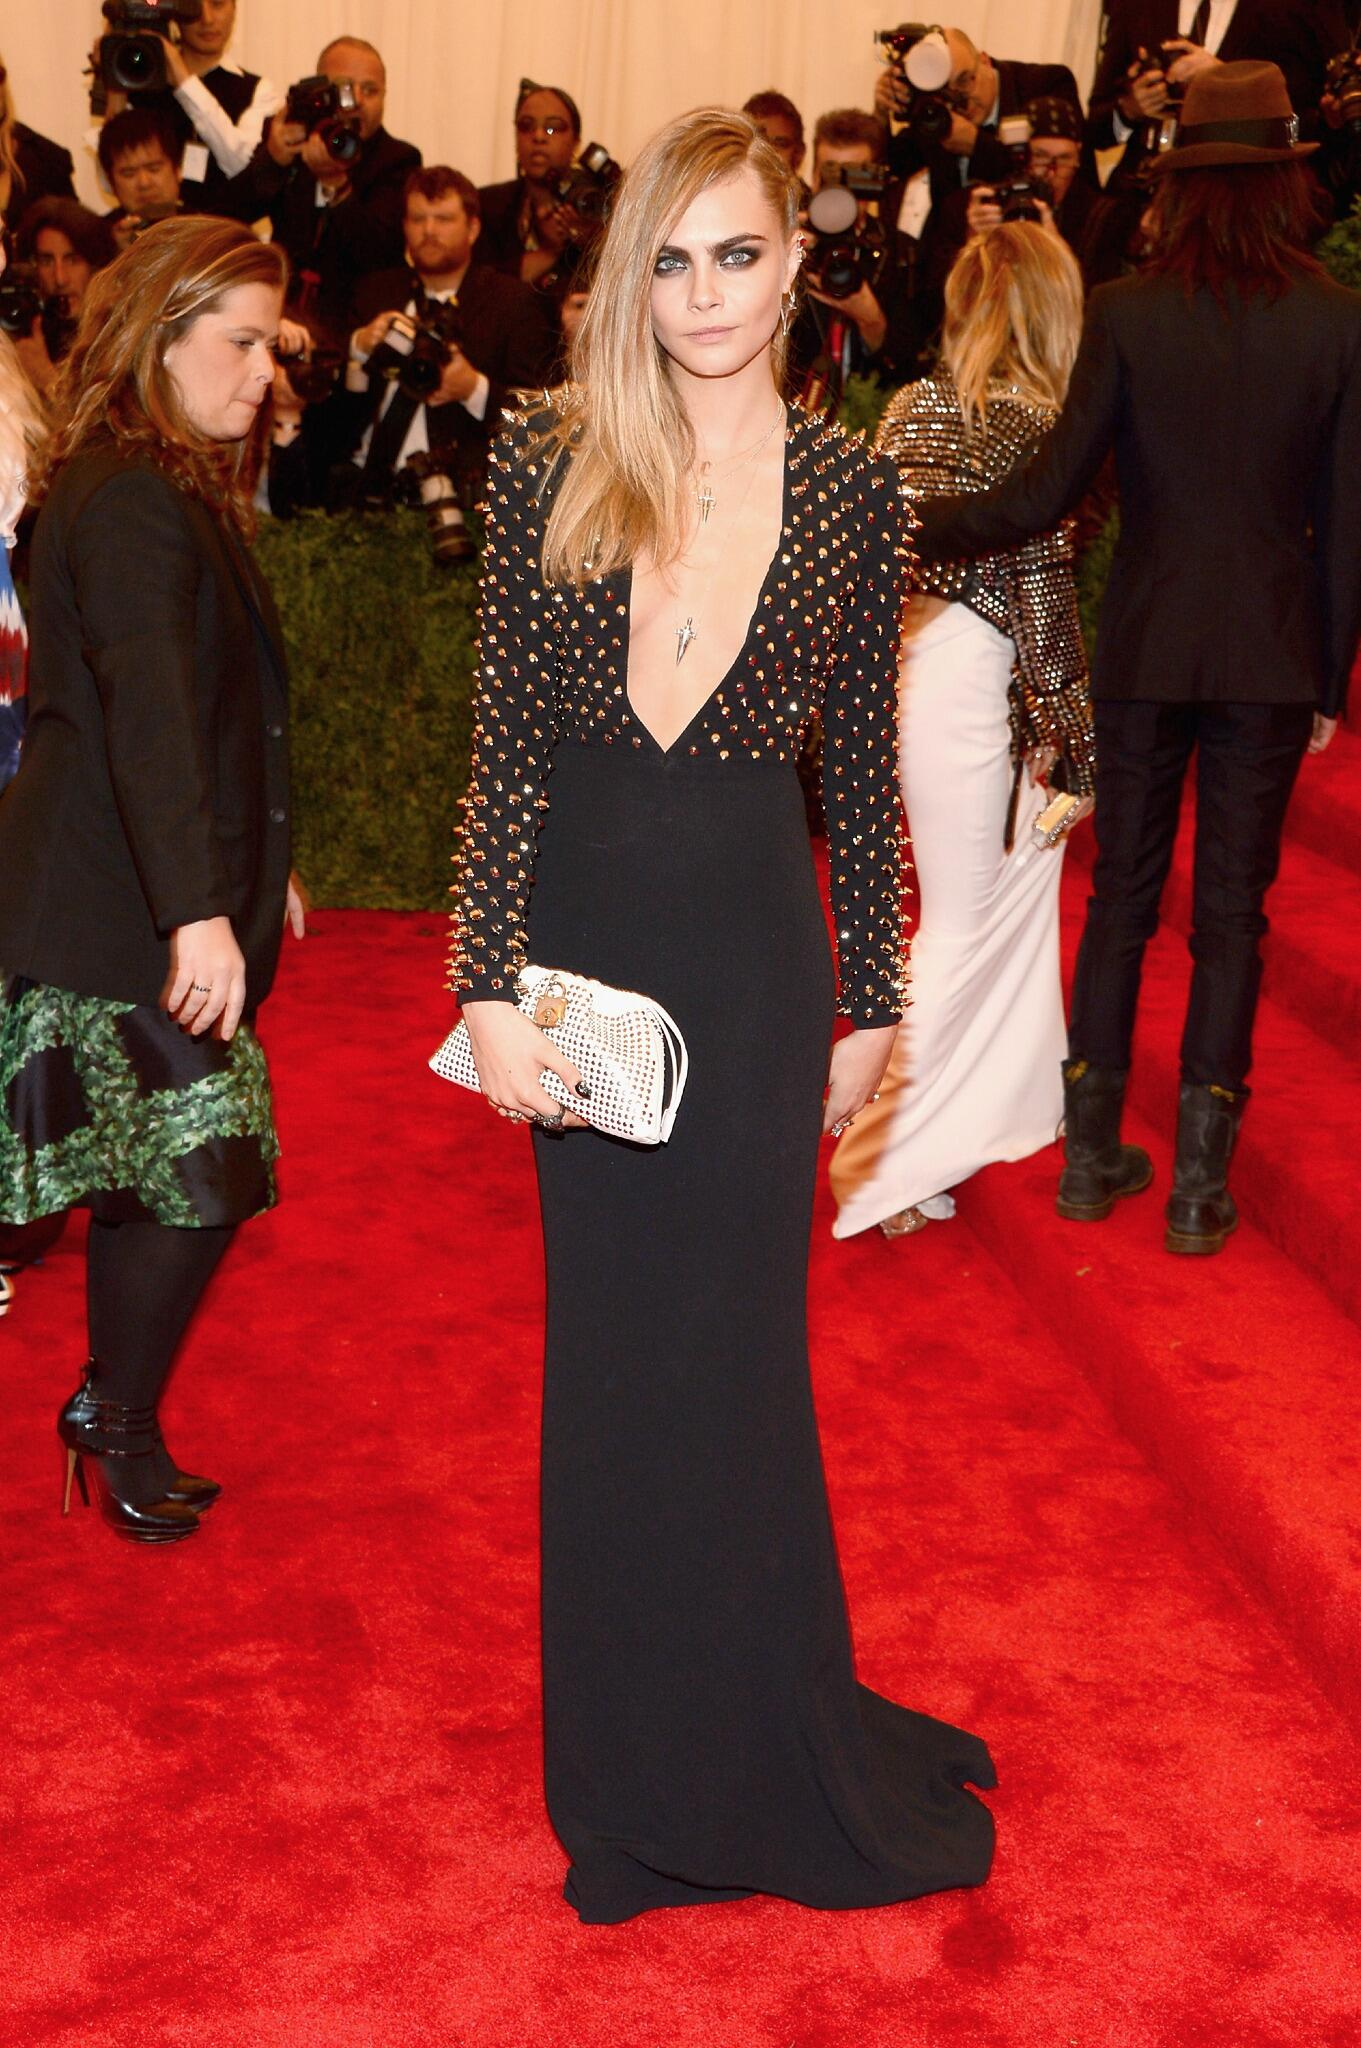 Cara Delevingne in Burberry at the 2013 Met Gala